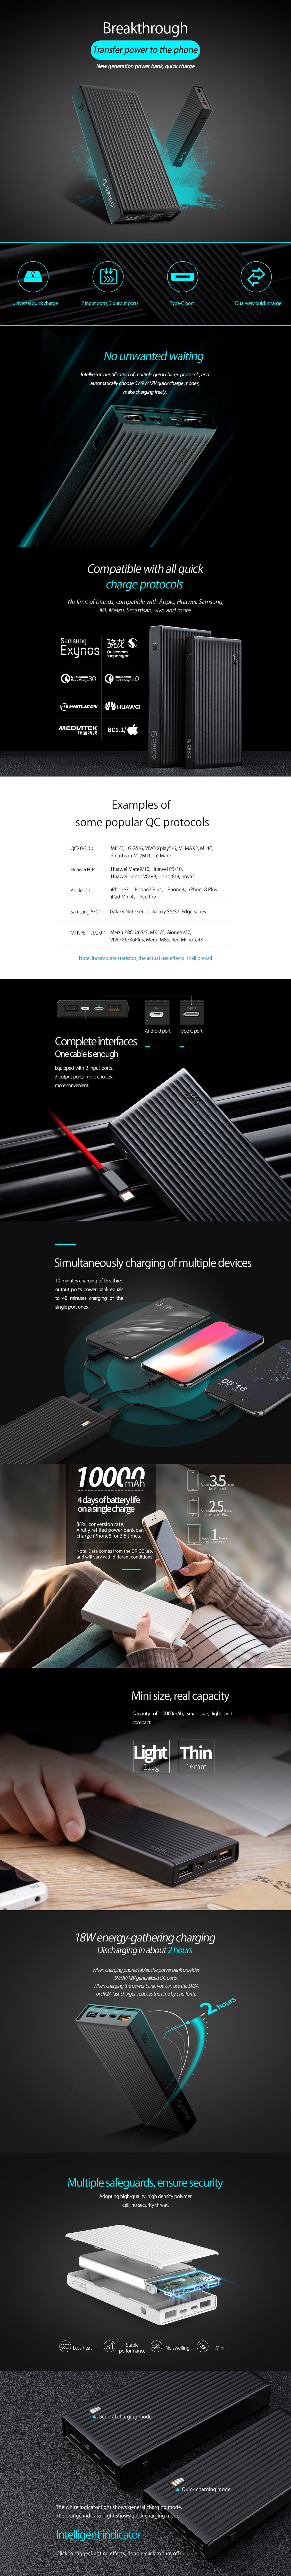 A large marketing image providing additional information about the product ORICO 10000mAh USB-A Type-C & Micro B Smart Power Bank - Black - Additional alt info not provided